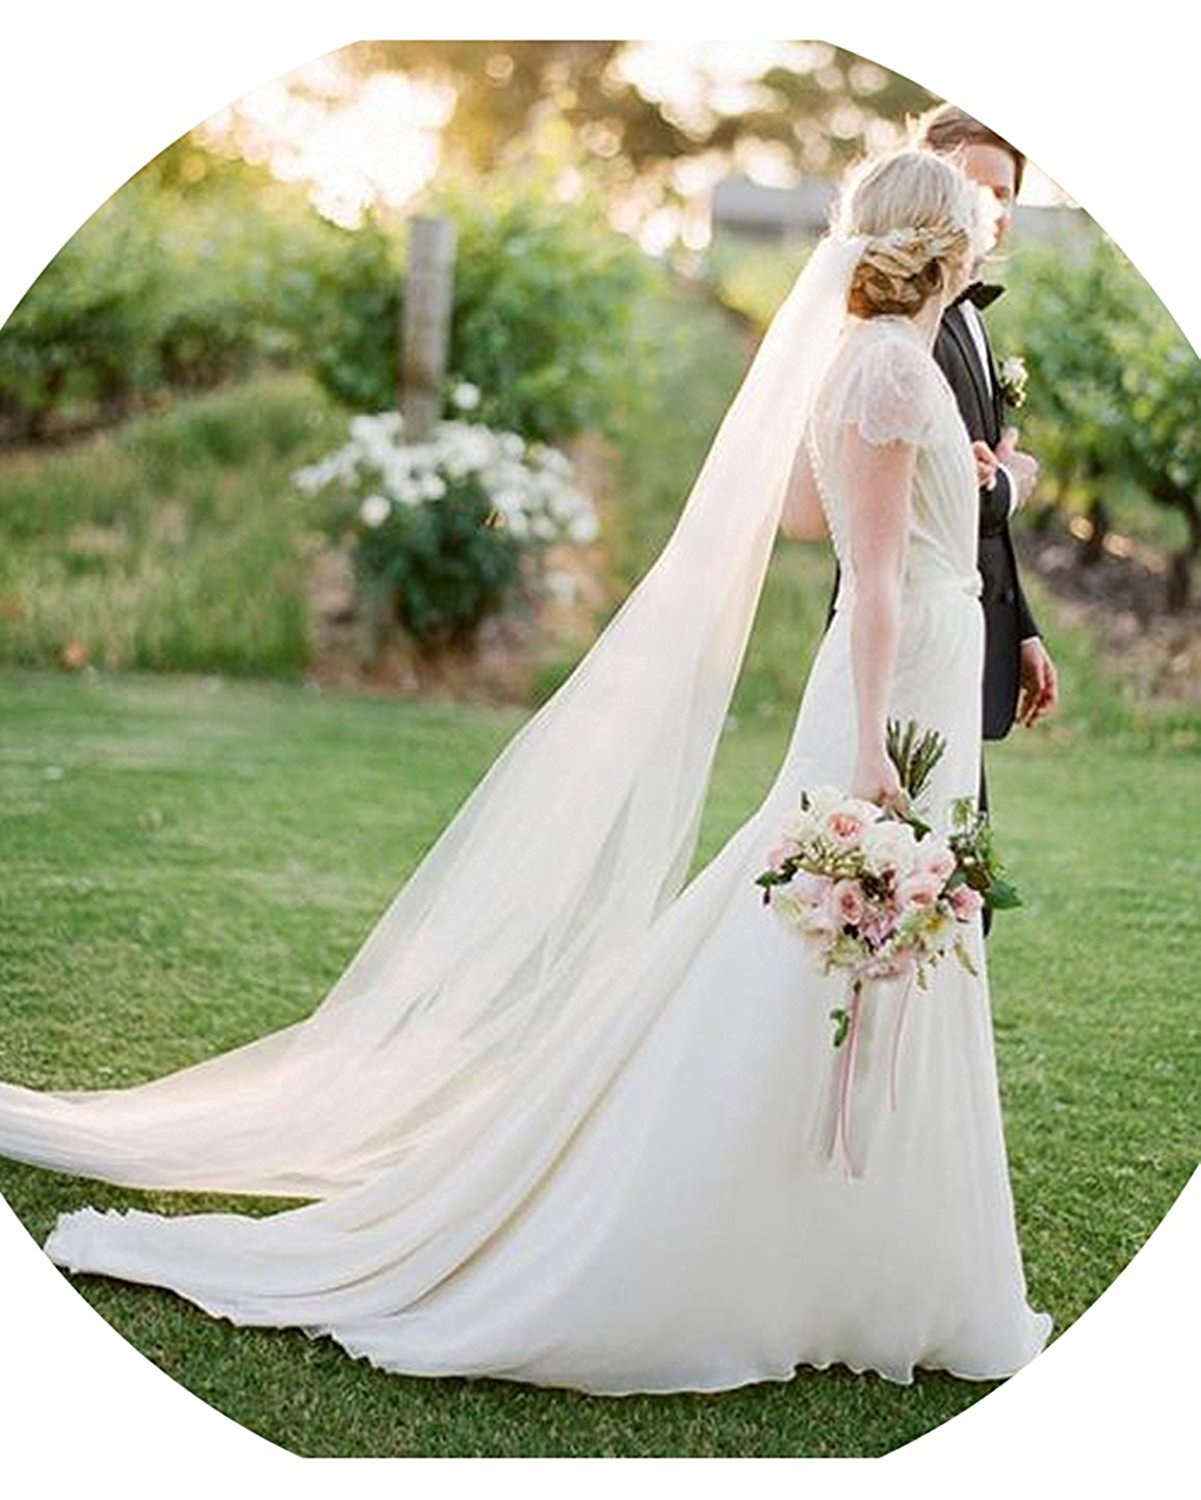 Ladsen Bride's 2T Long Wedding Veils 2M/3M Tulle Bridal Veil White Ivory with Comb